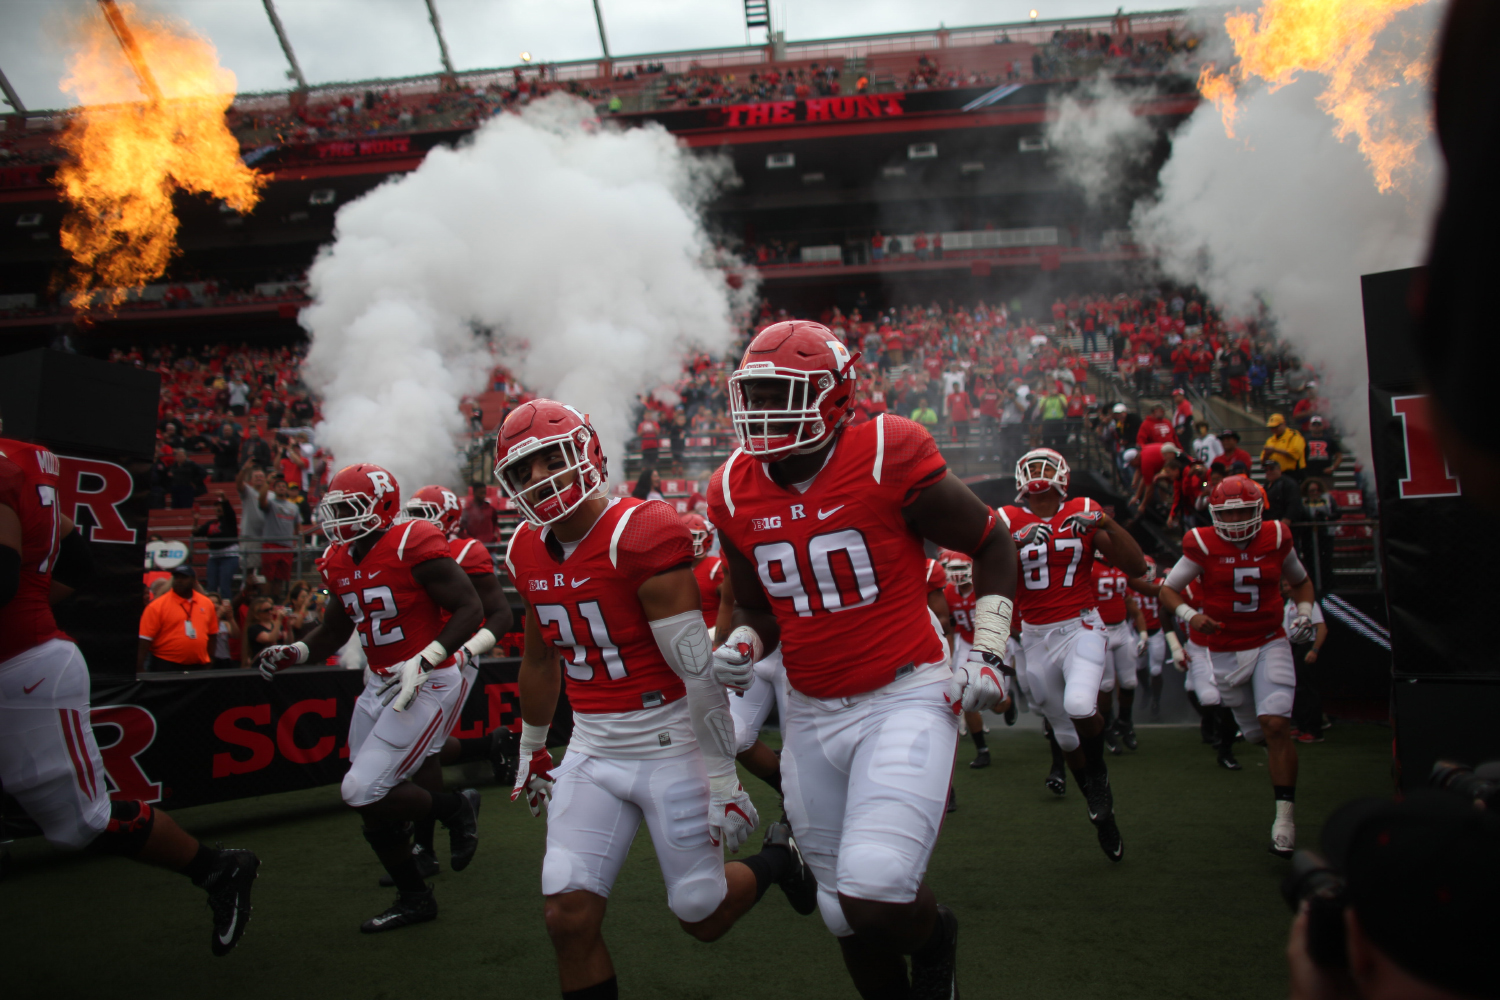 The Rutgers team runs onto the field during the Iowa-Rutgers game at High Point Solution Stadium at Piscataway on Saturday, Sept. 24, 2016. The Hawkeyes defeated the Knights, 14-7. (The Daily Iowan/Margaret Kispert)